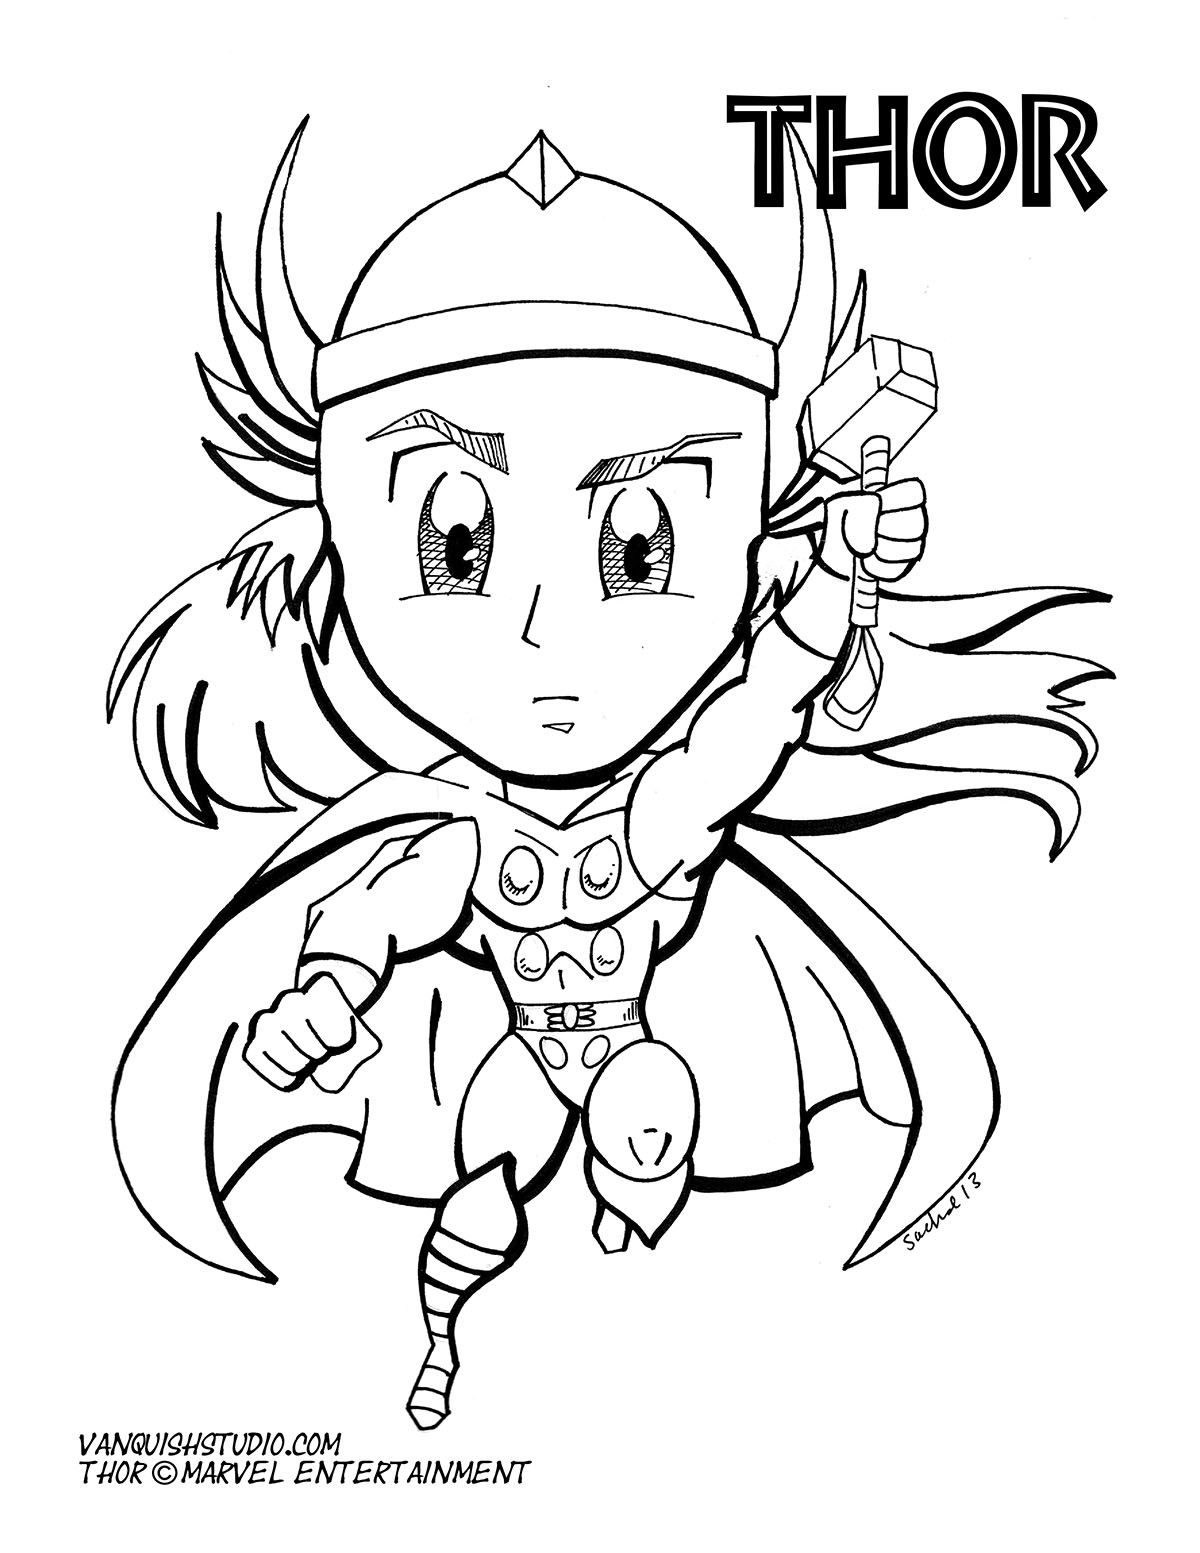 Chibi Thor Superhero Coloring Pages Marvel Coloring Avengers Coloring [ 1553 x 1200 Pixel ]